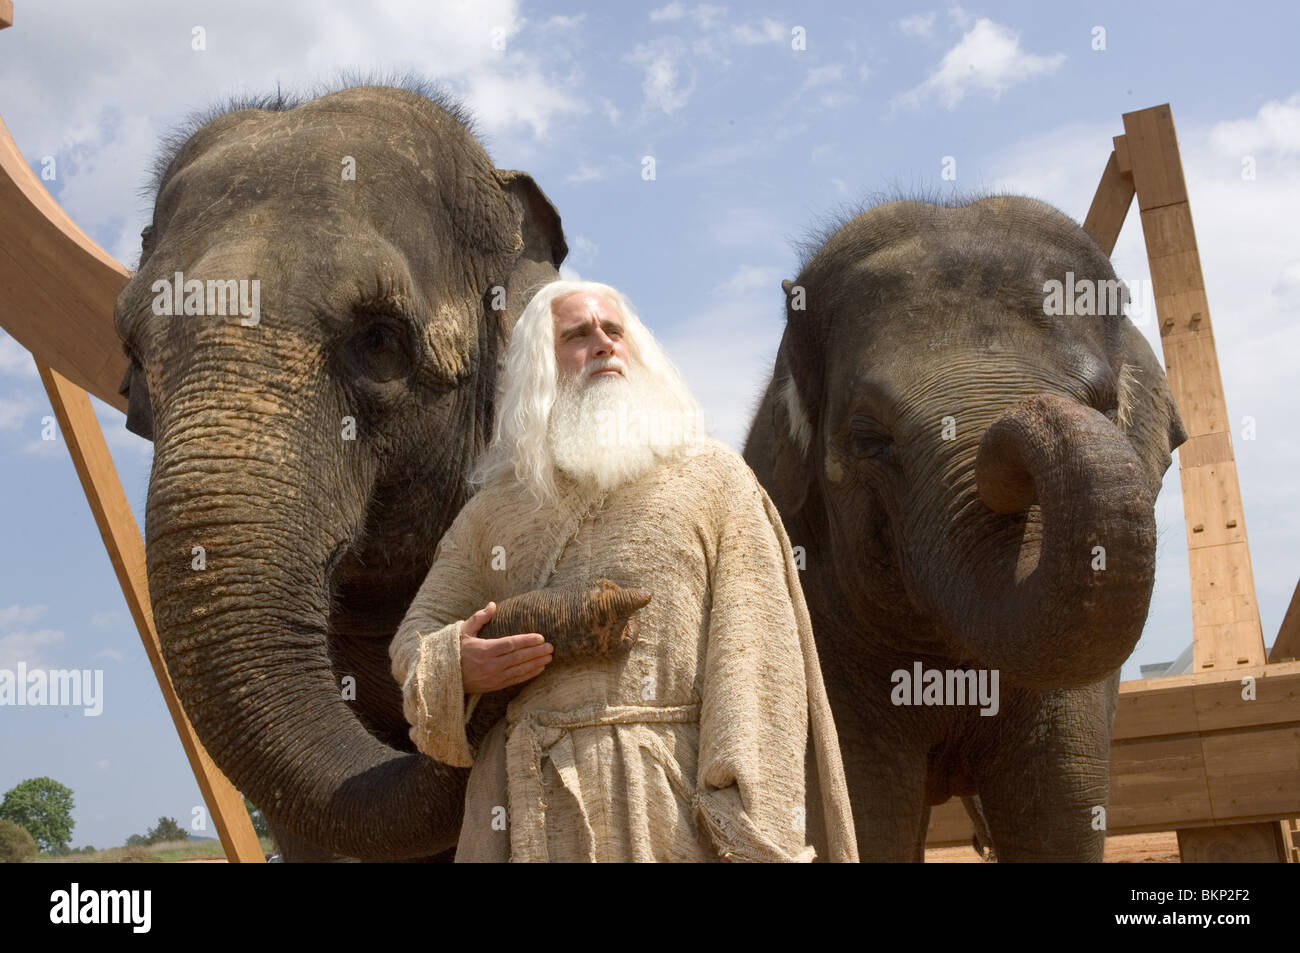 EVAN ALMIGHTY (2007) STEVE CARELL EVAL 001-13 - Stock Image